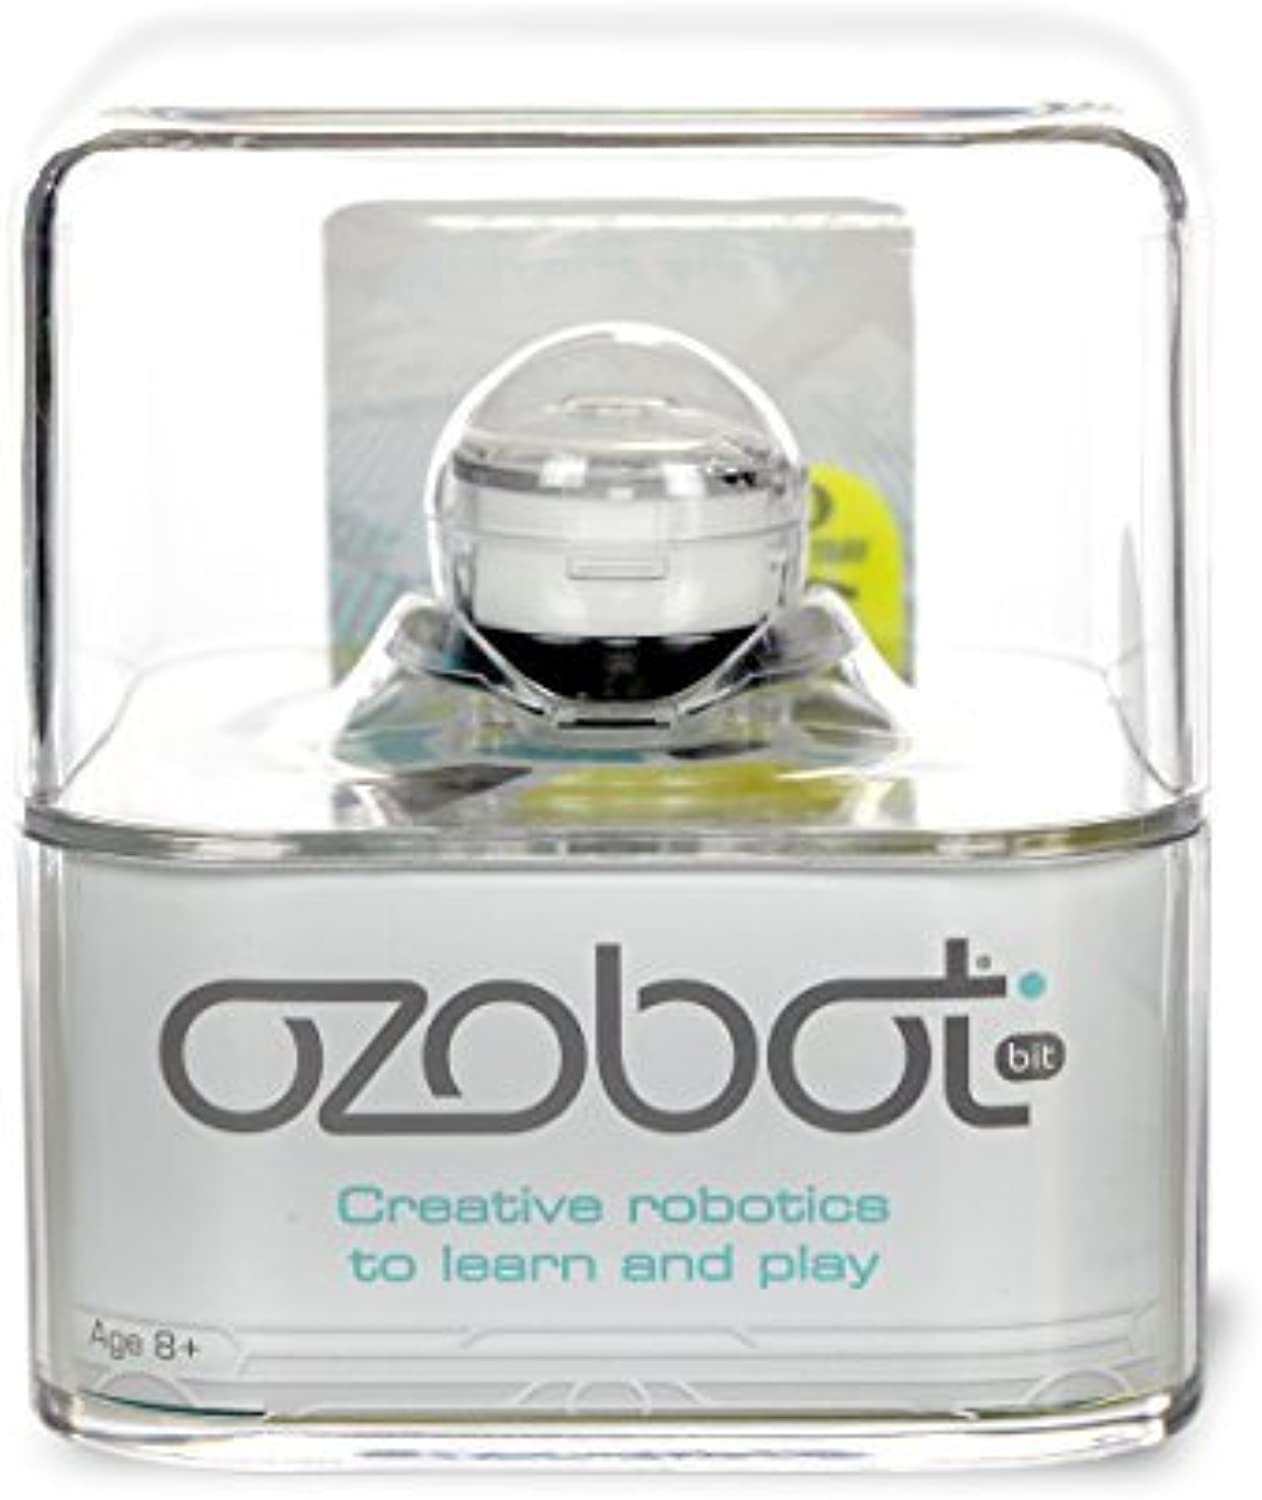 ganancia cero Ozobot 2.0 Bit, the Educational Juguete Robot that Teaches Teaches Teaches STEM and Coding, Crystal blanco by Ozobot  marcas de moda